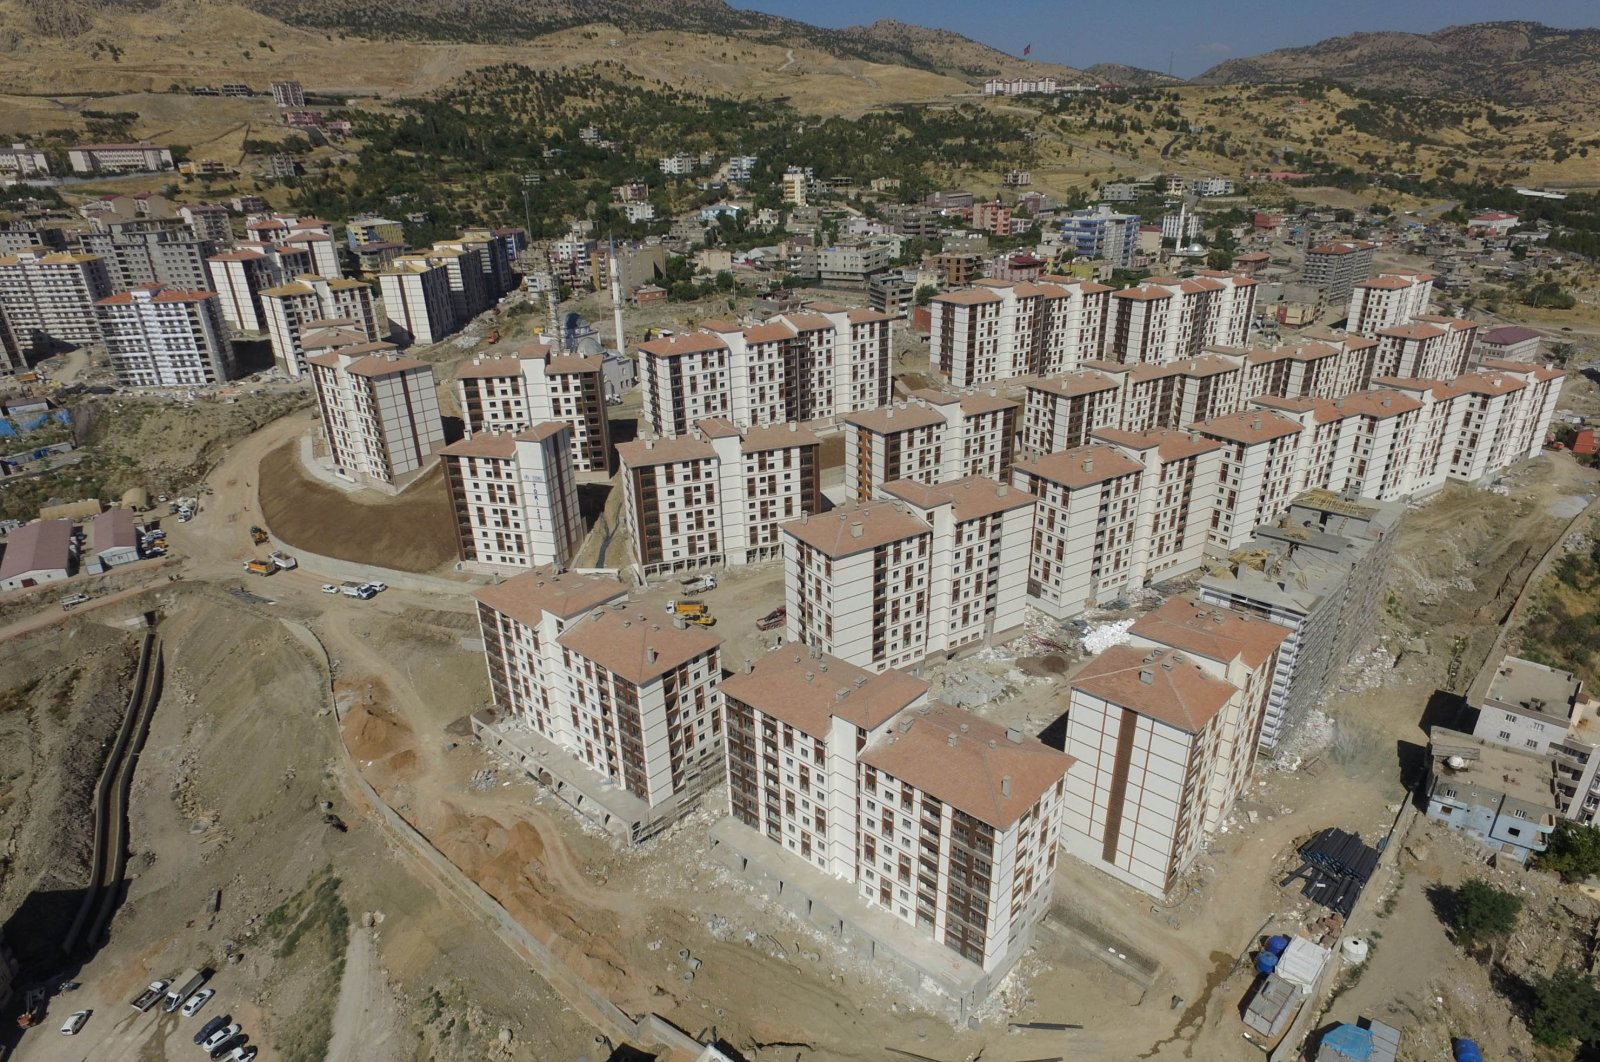 This file photo dated 2018 shows a housing project in southeastern Şırnak province. (Sabah File Photo)